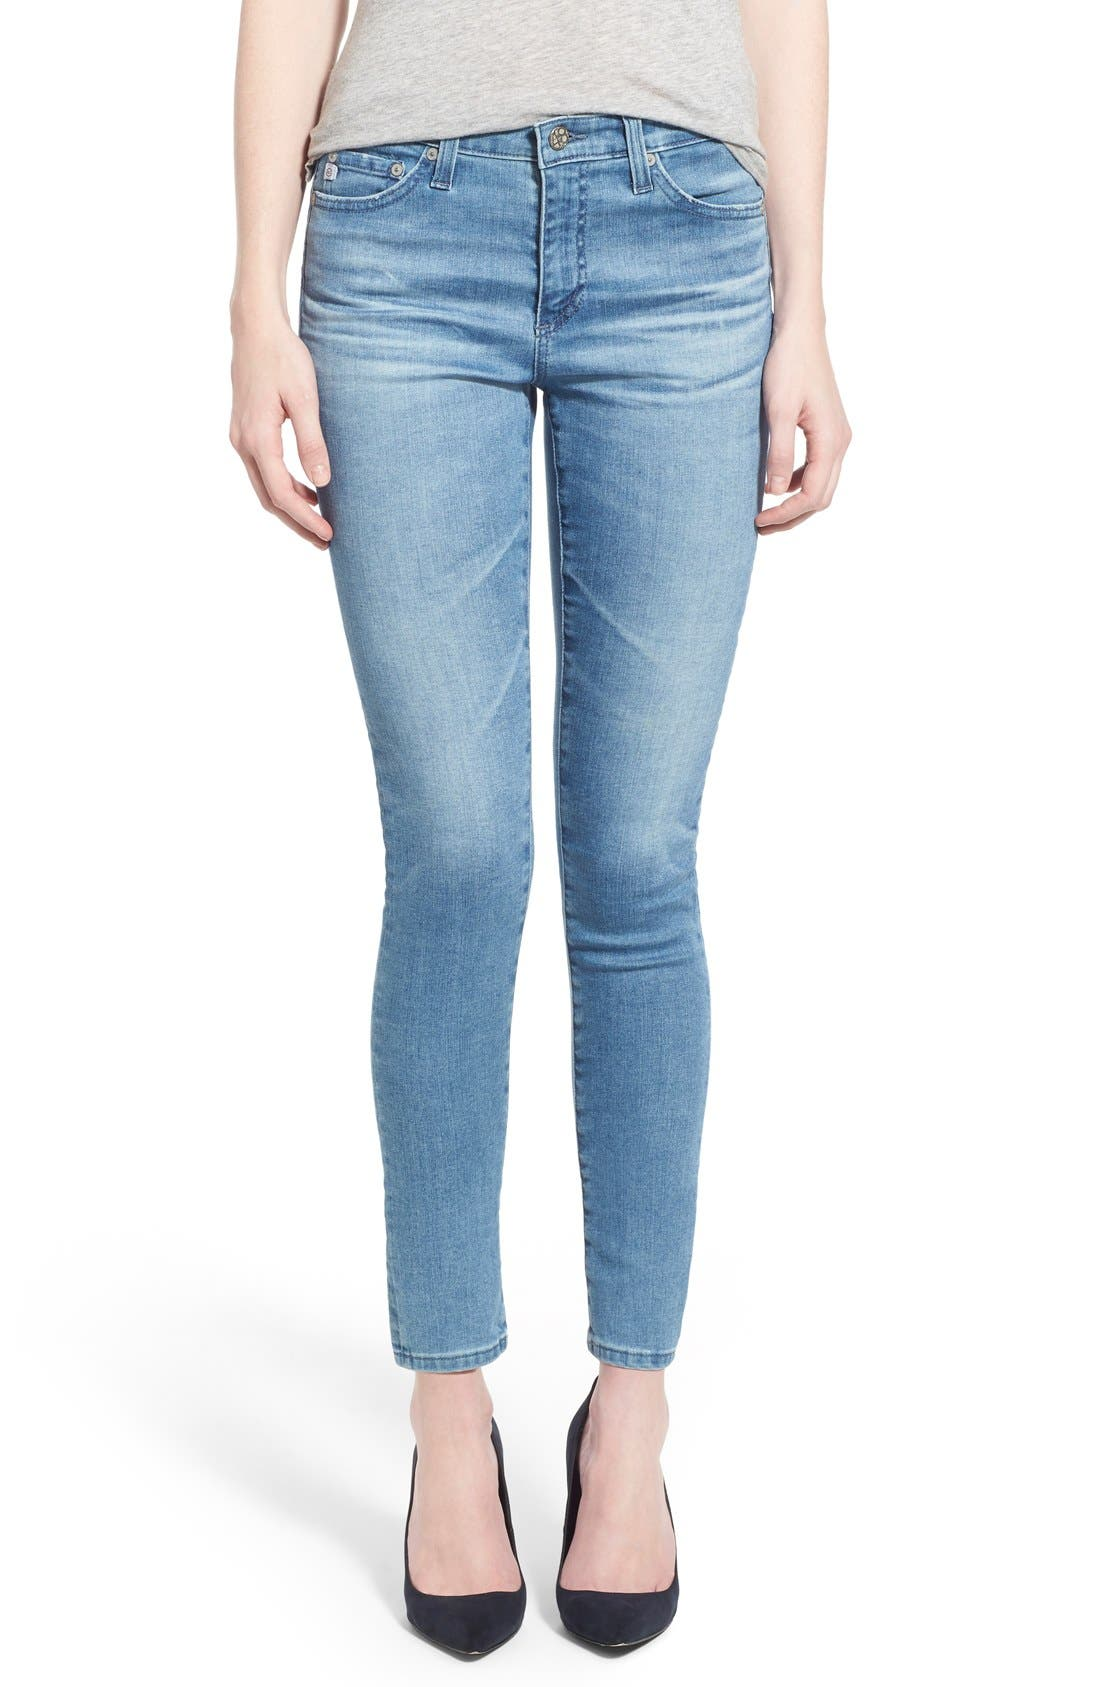 Alternate Image 1 Selected - AG 'Middi' Ankle Skinny Jeans (15 Year LiberatingBeat)